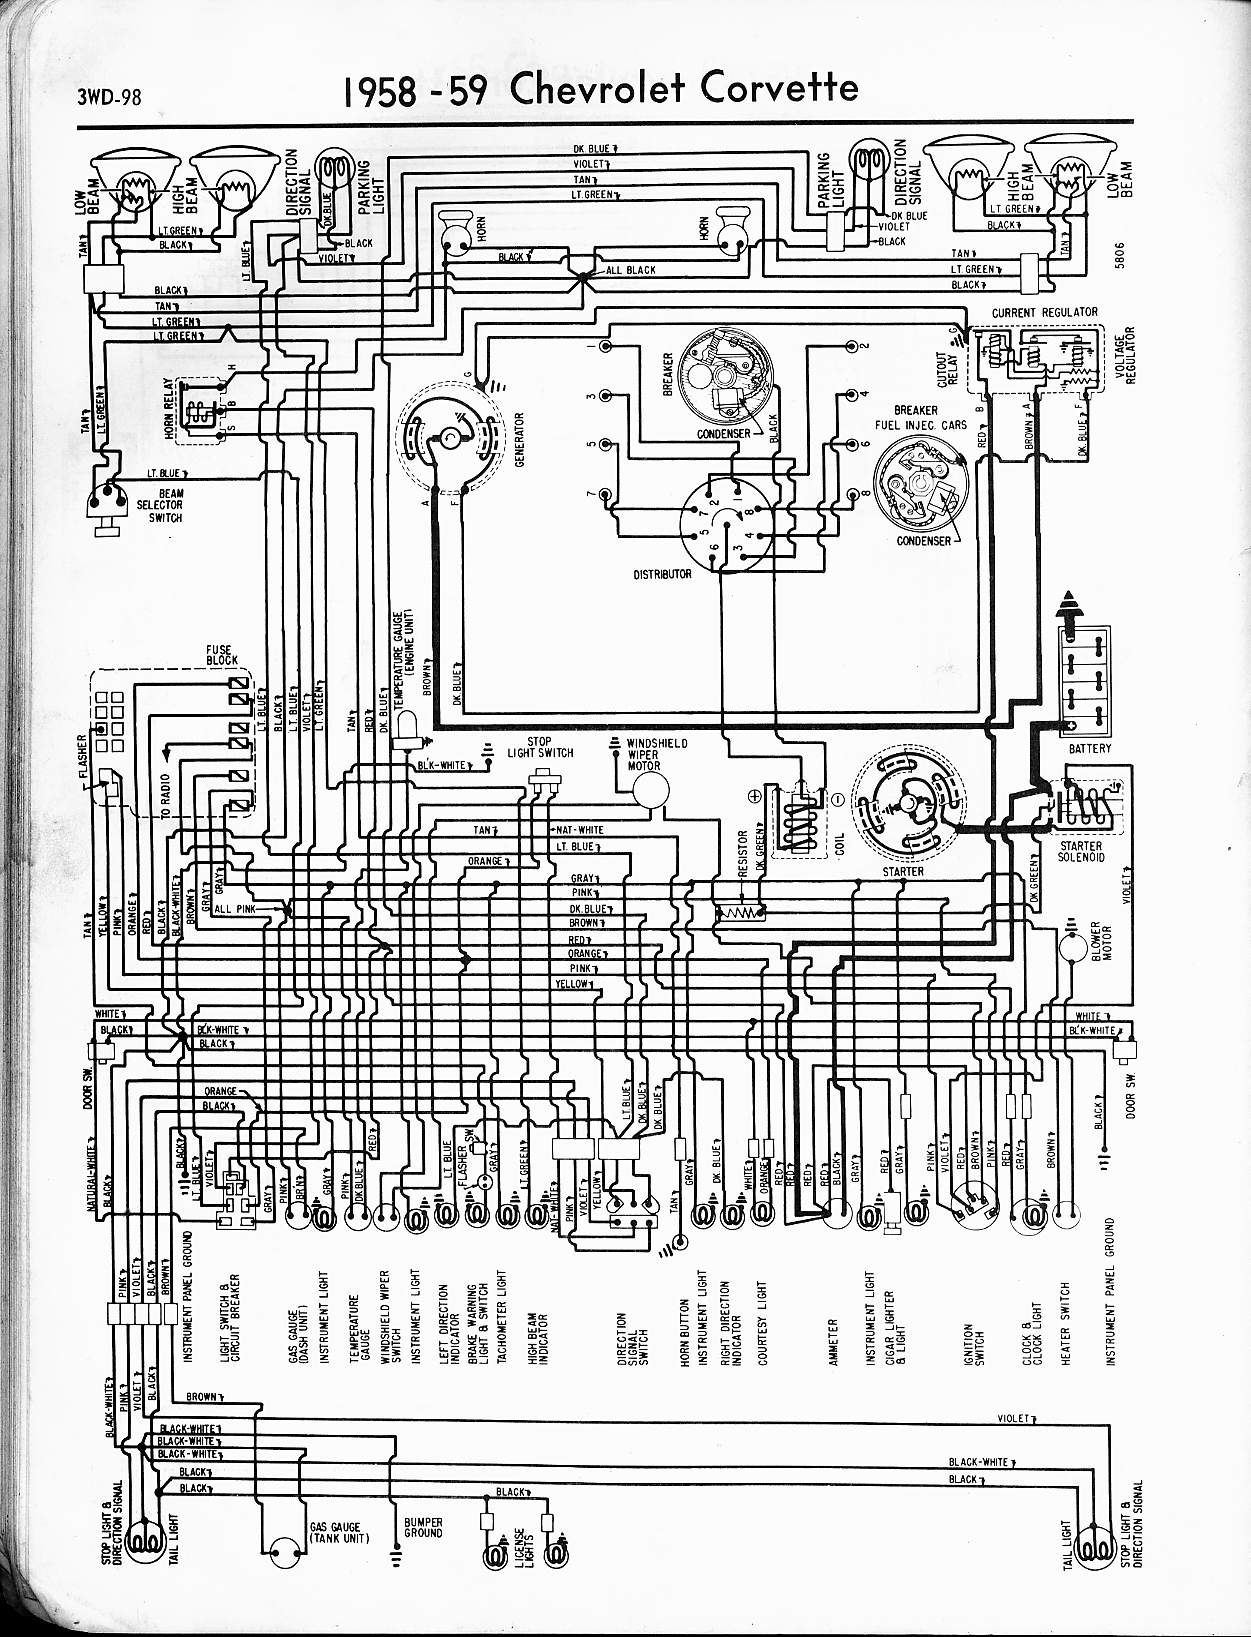 65 Gmc Truck Wiring Diagram Free Download Explore Schematic 1965 Chevy Impala 57 Diagrams Rh Oldcarmanualproject Com Automotive 1988